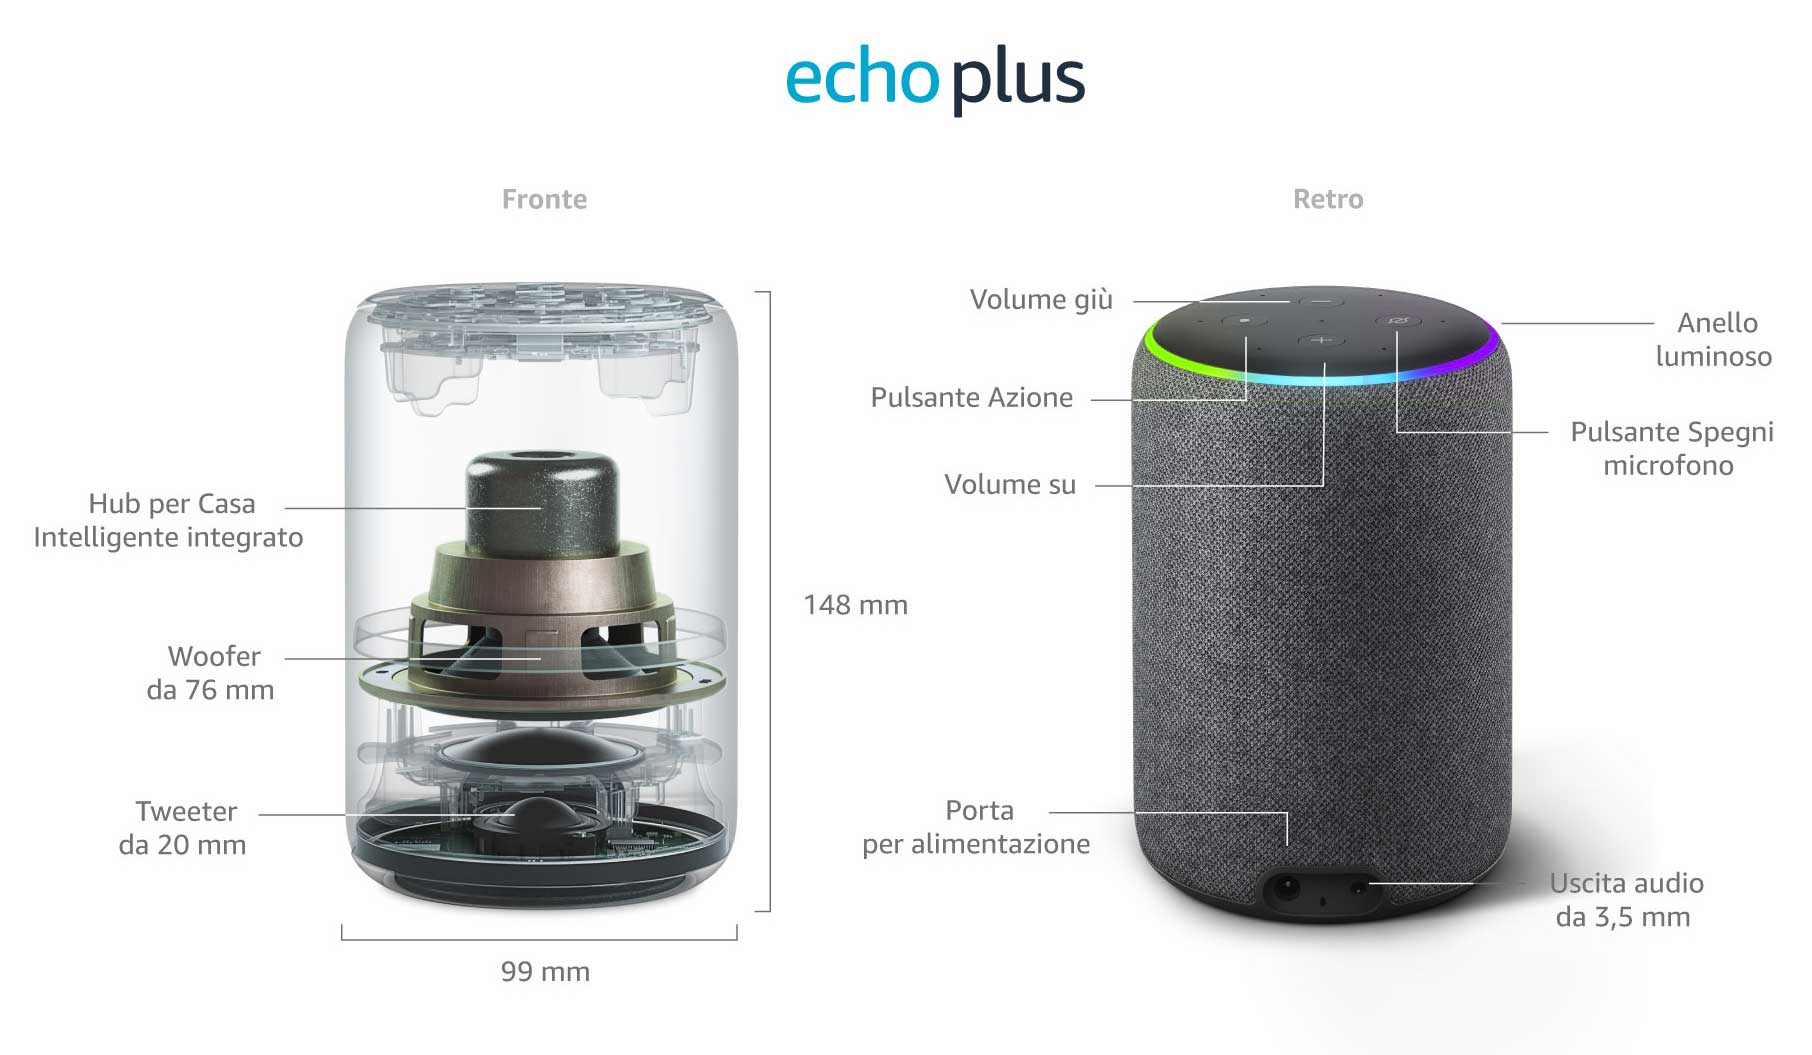 echo plus smart migliore speaker assistente vocale